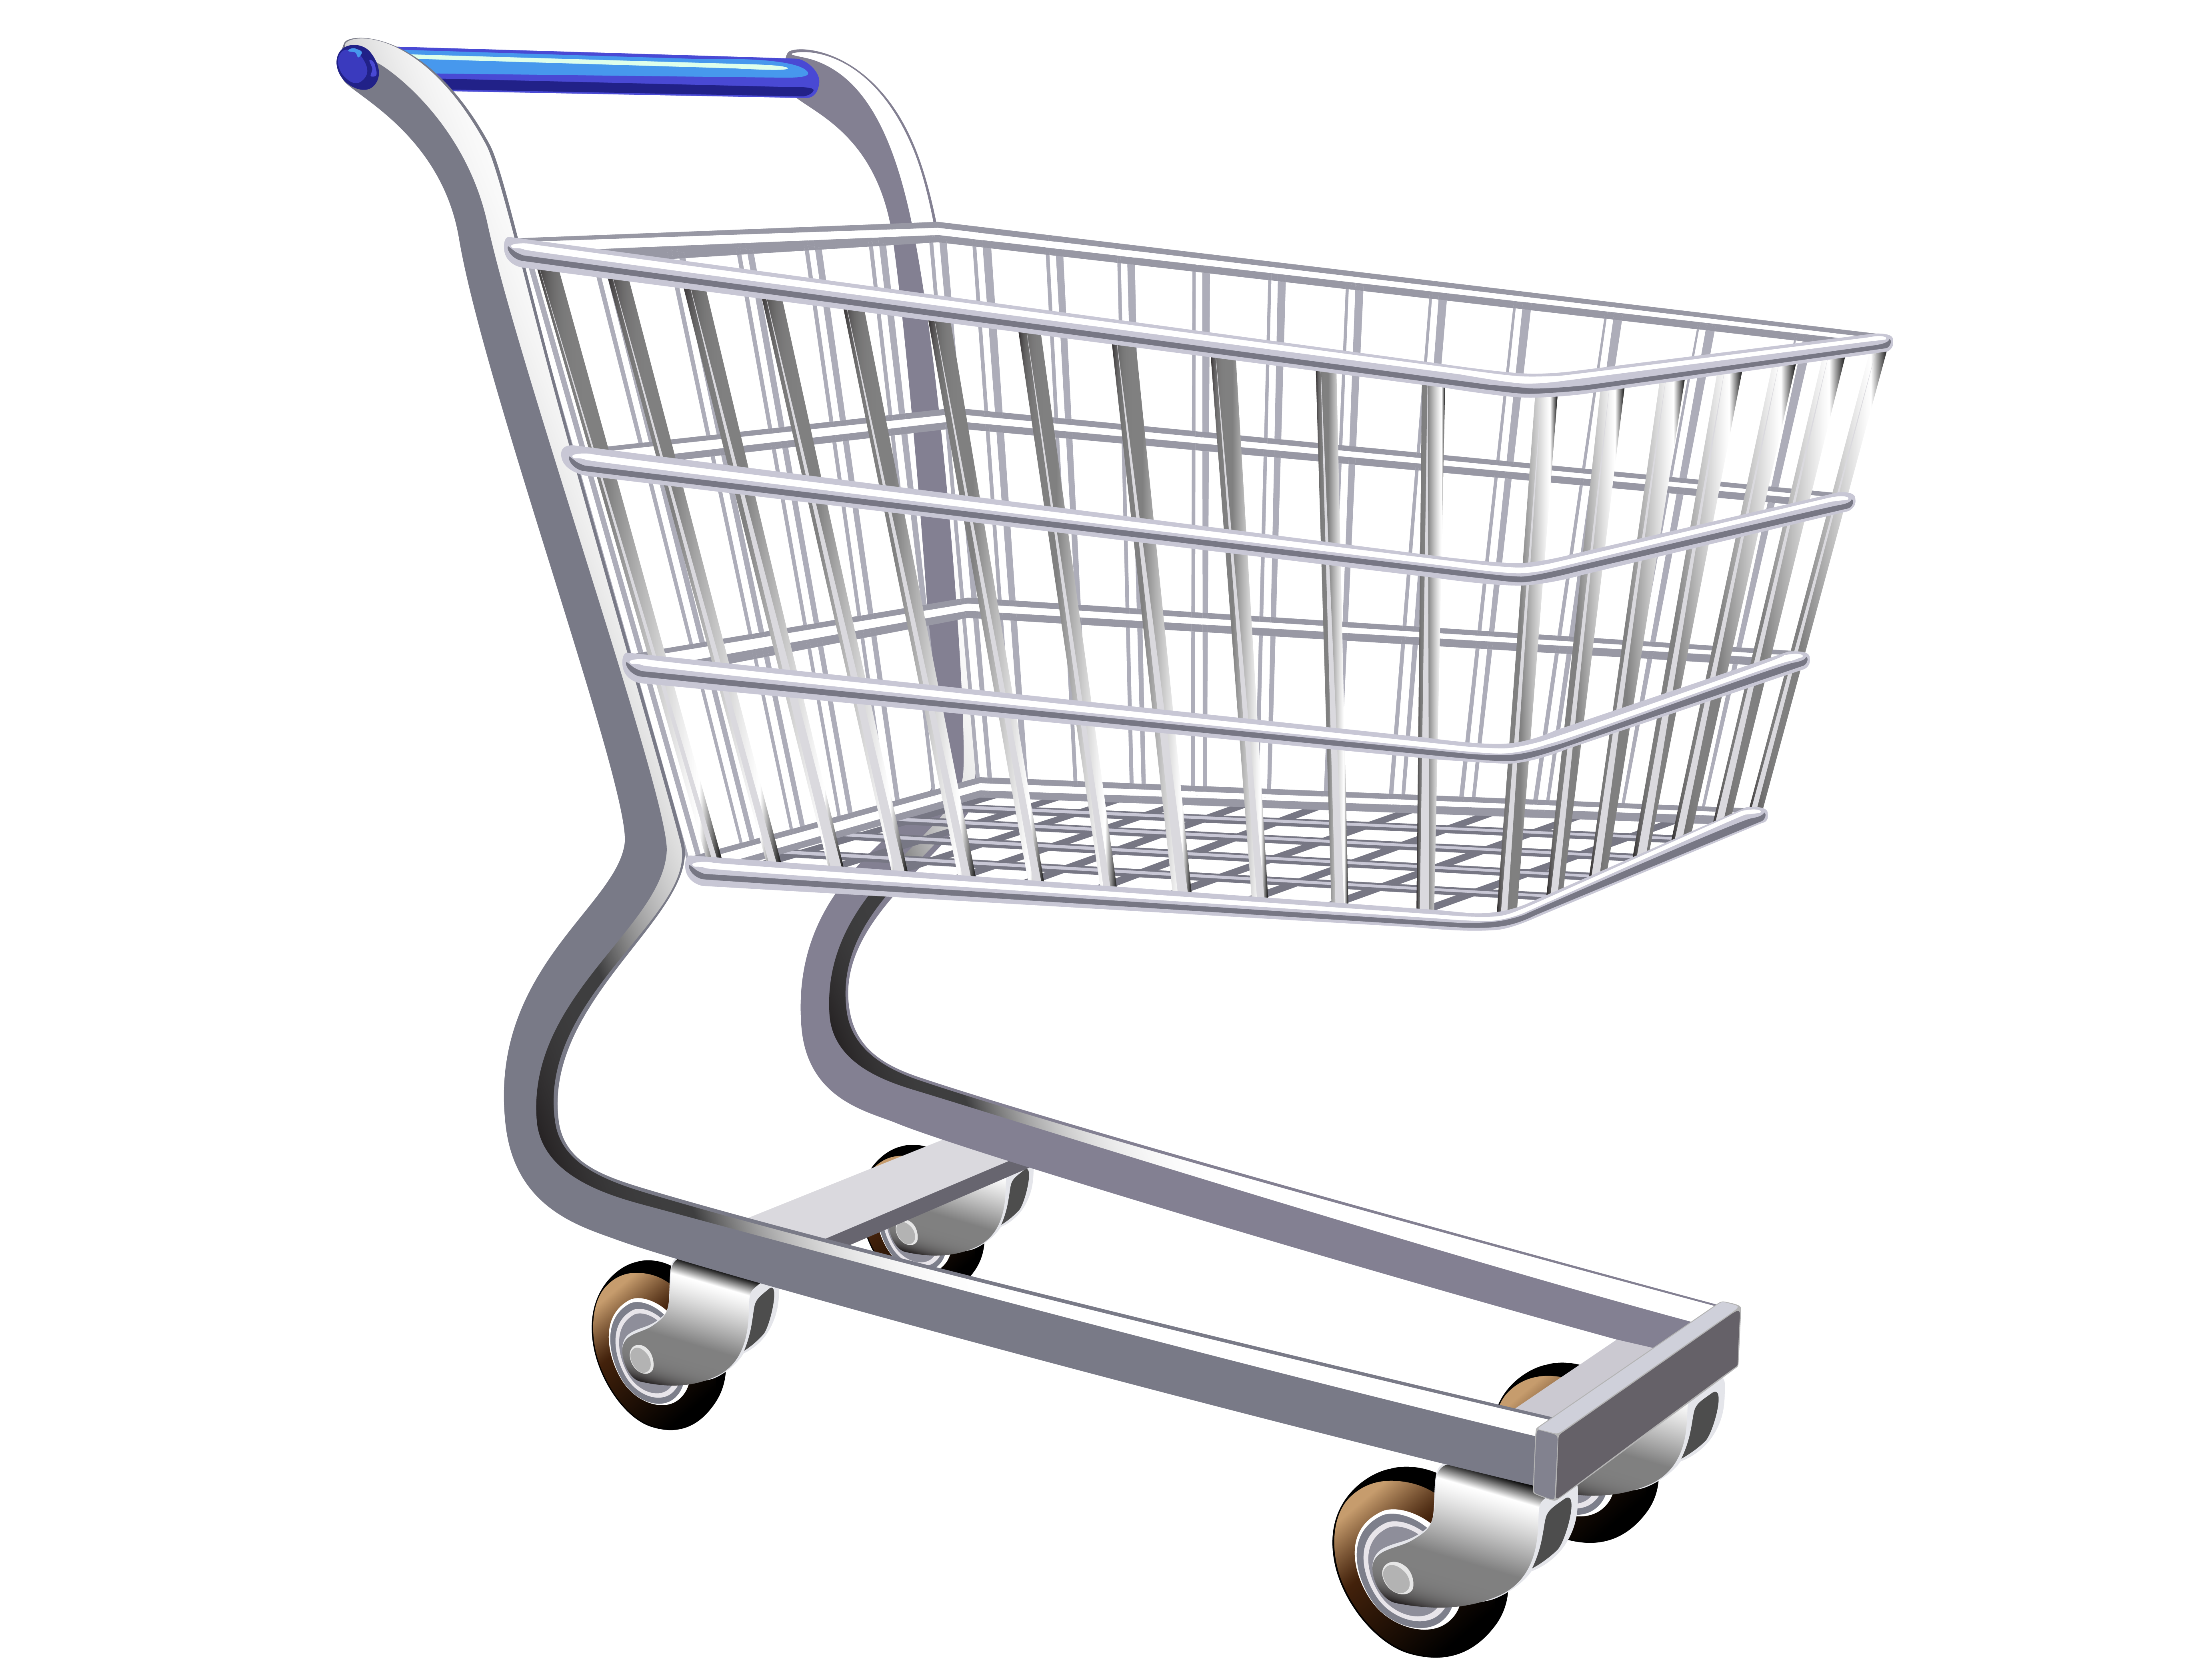 Shopping cart PNG images free download.